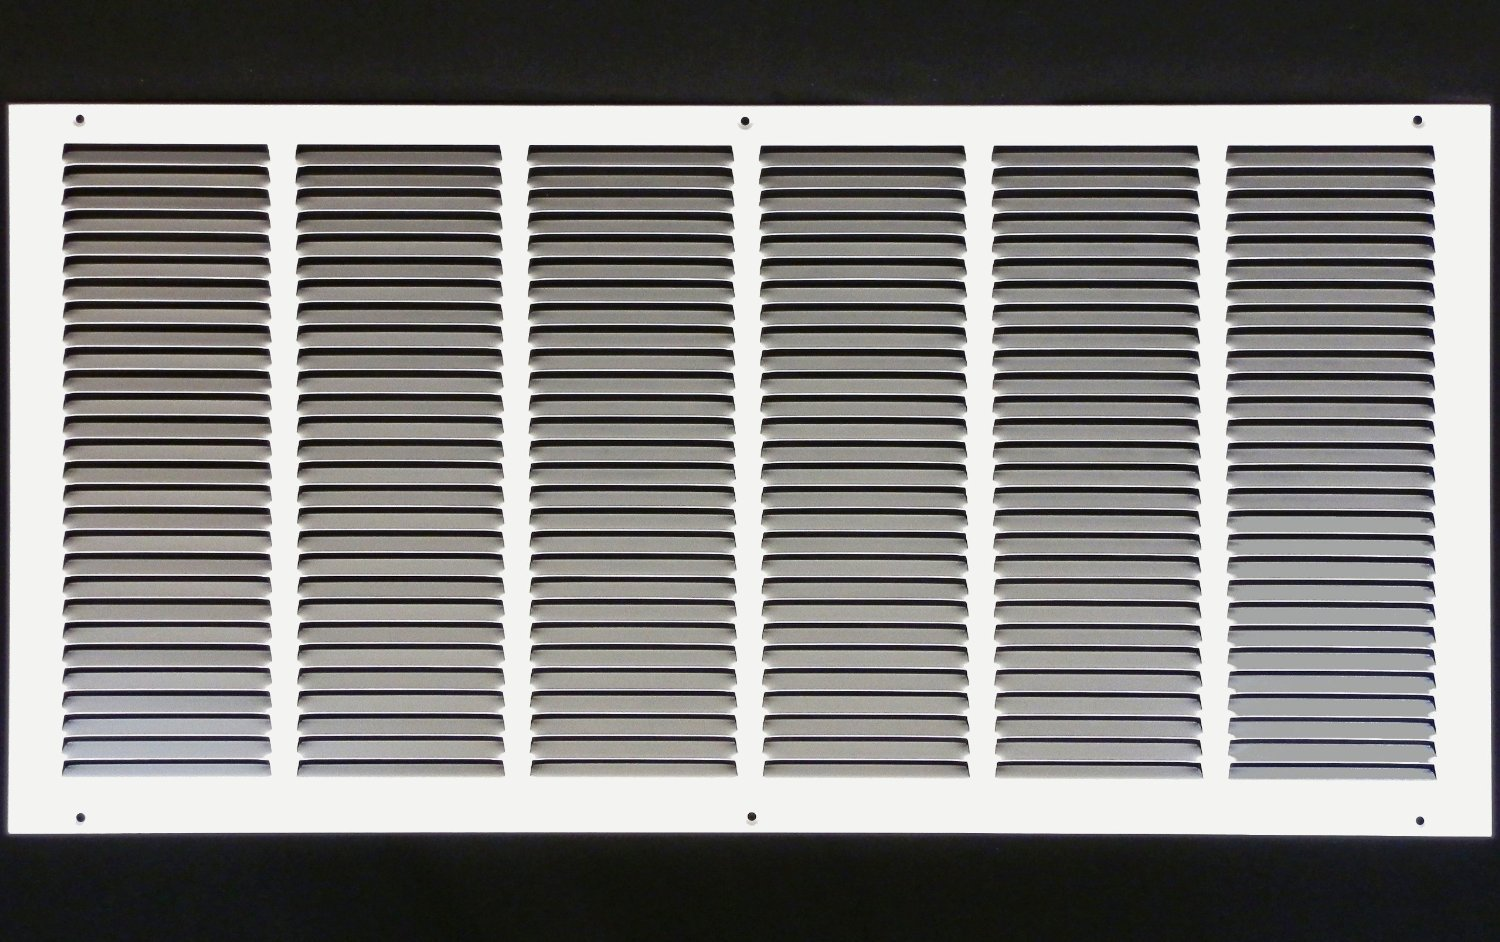 30''w X 12''h Steel Return Air Grilles - Sidewall and Cieling - HVAC DUCT COVER - White [Outer Dimensions: 31.75''w X 13.75''h]